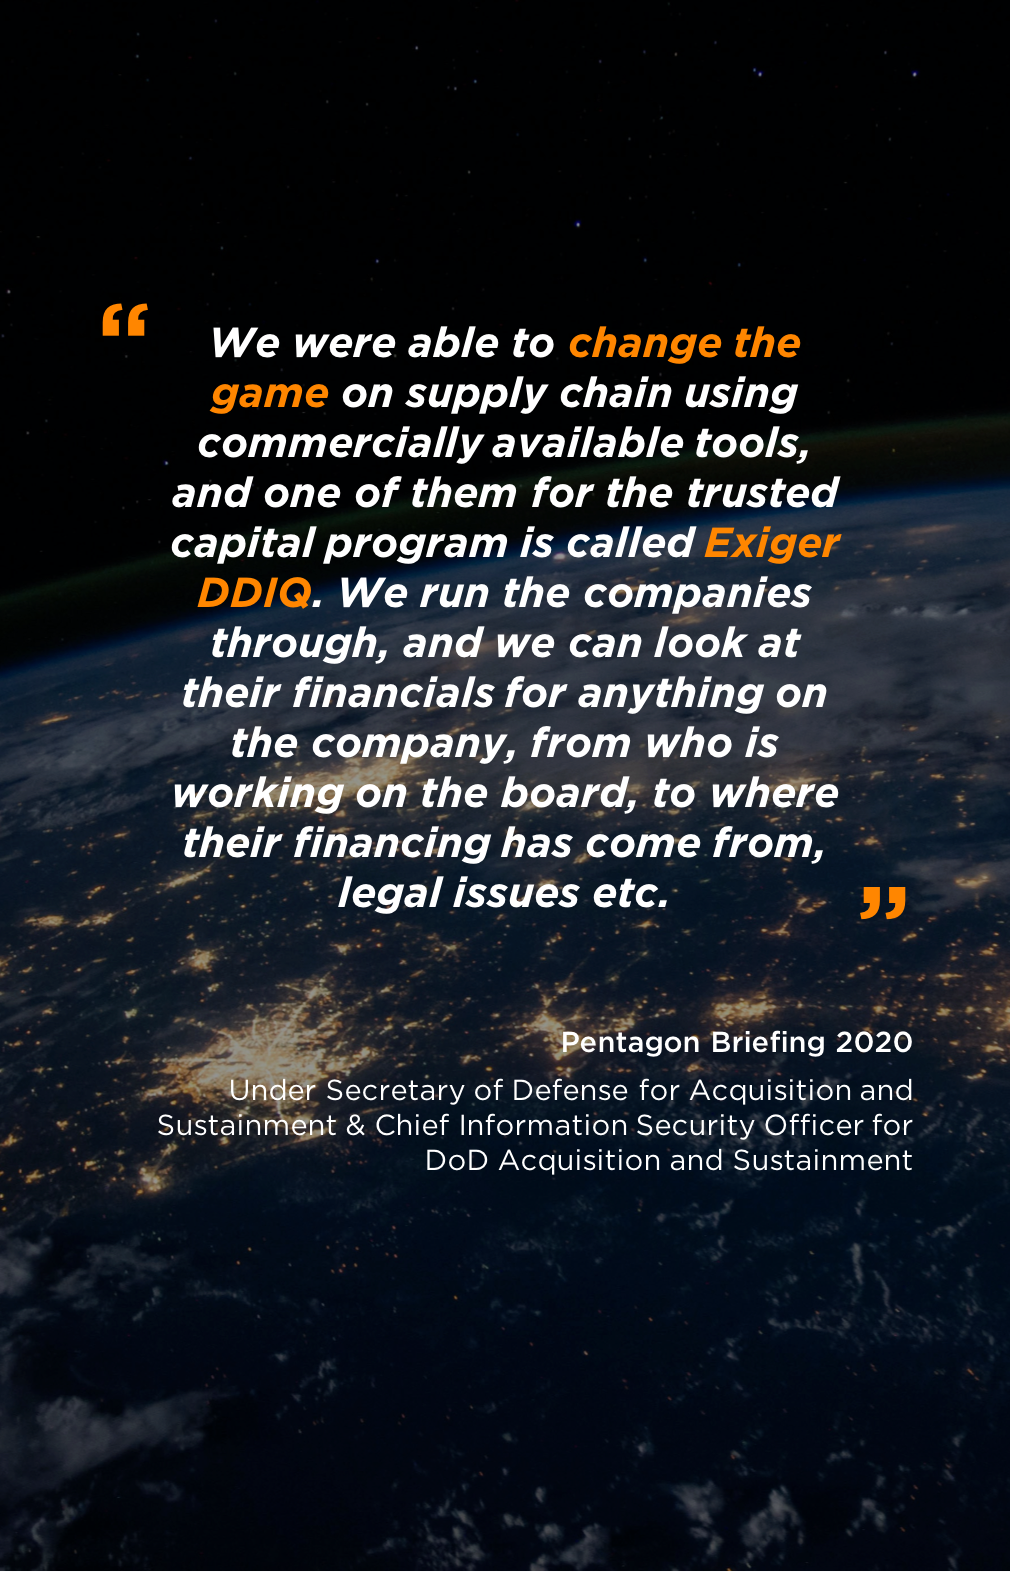 We were able to change the game on supply chain using commercially available tools, and one of them for the trusted capital program is called Exiger DDIQ. We run the companies through, and we can look at their financials for anything on the company, from who is working on the board, to where their financing has come from, legal issues etc.